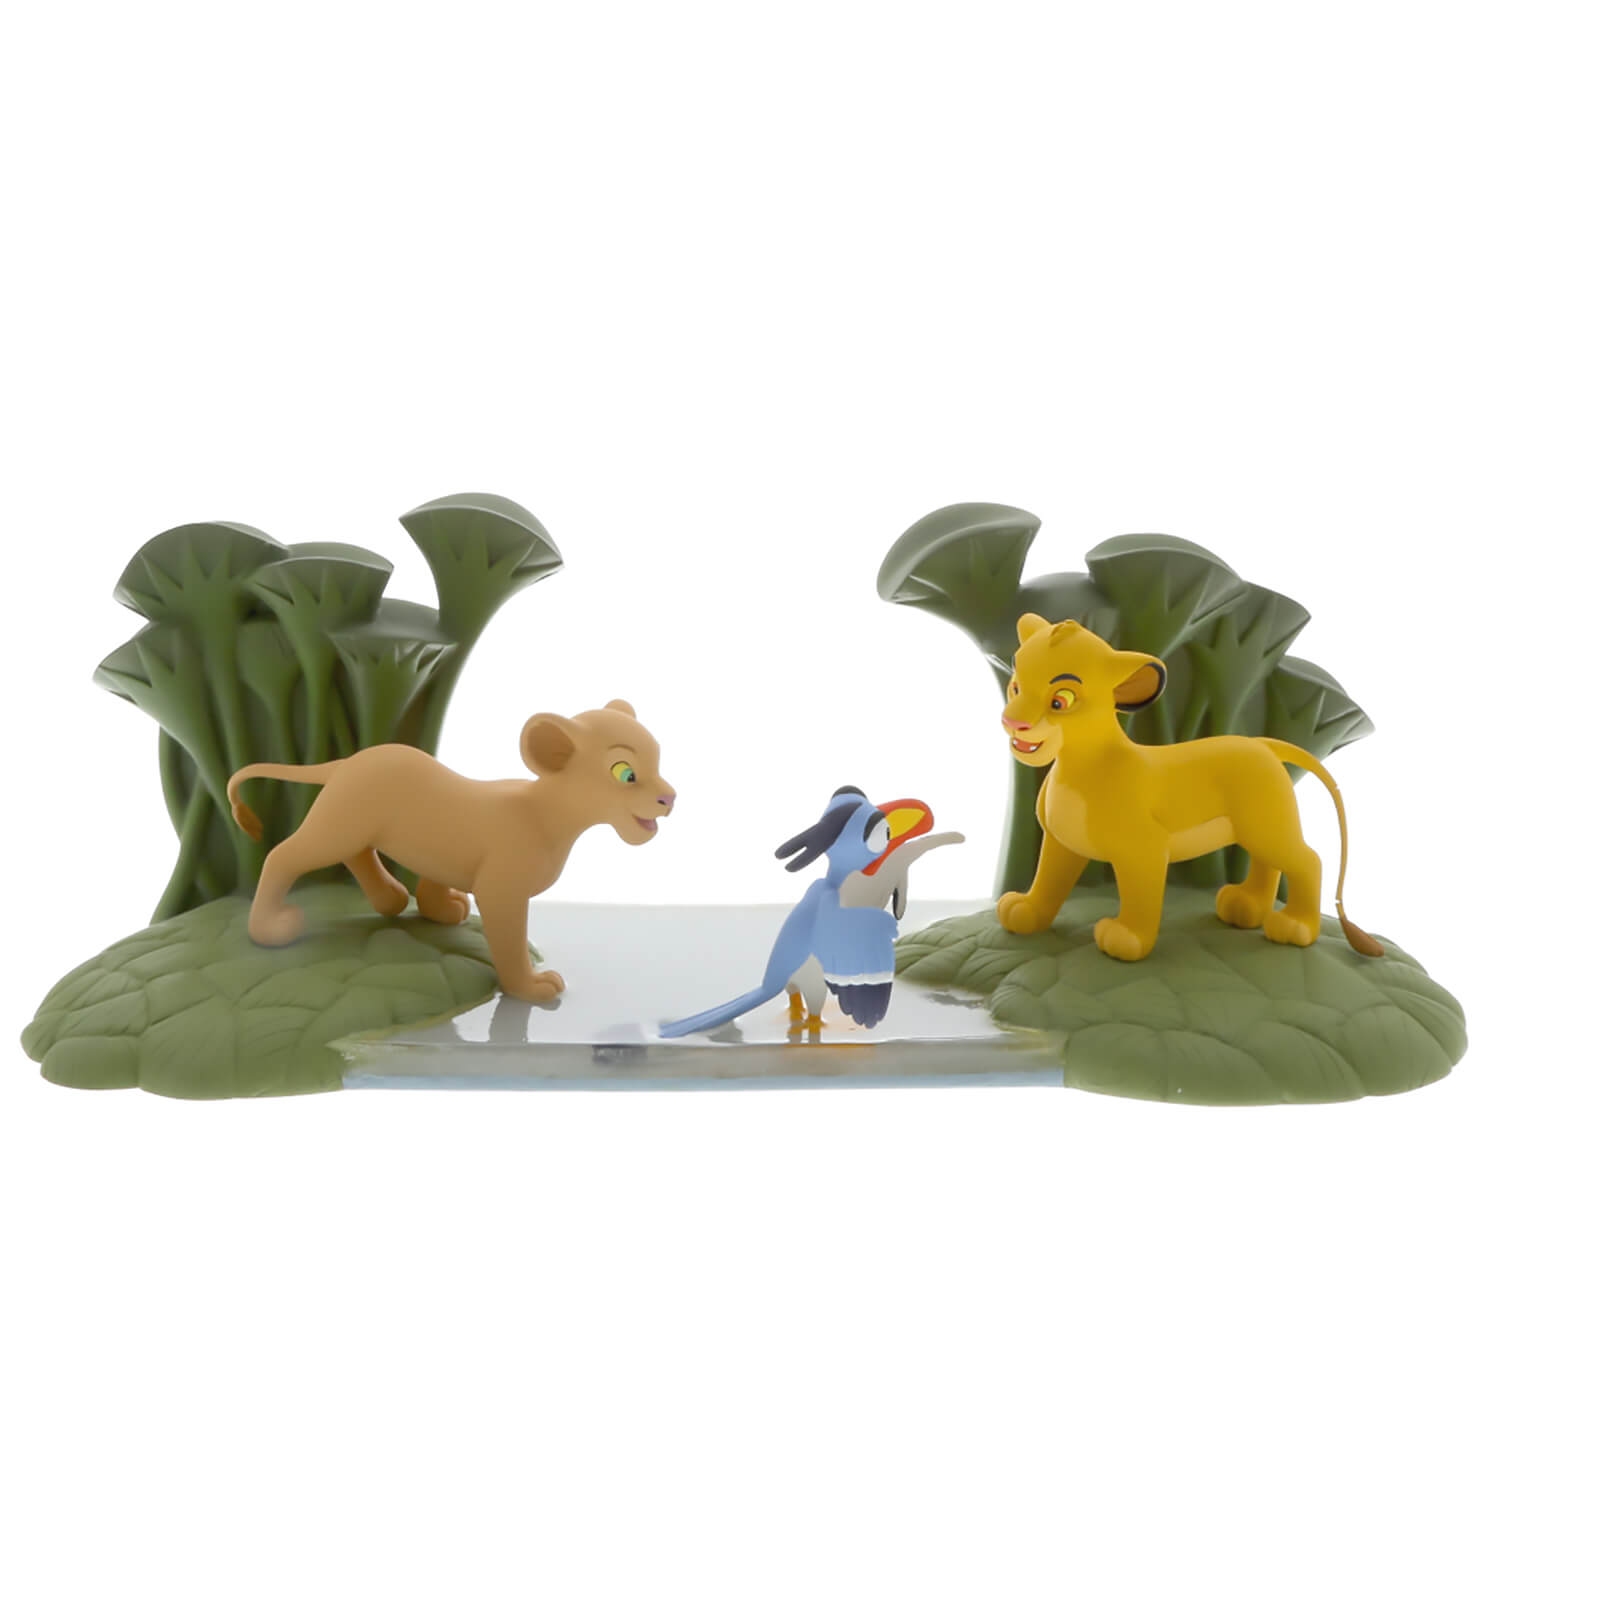 Image of Enchanting Disney Collection - Mighty King (The Lion King Figurine)